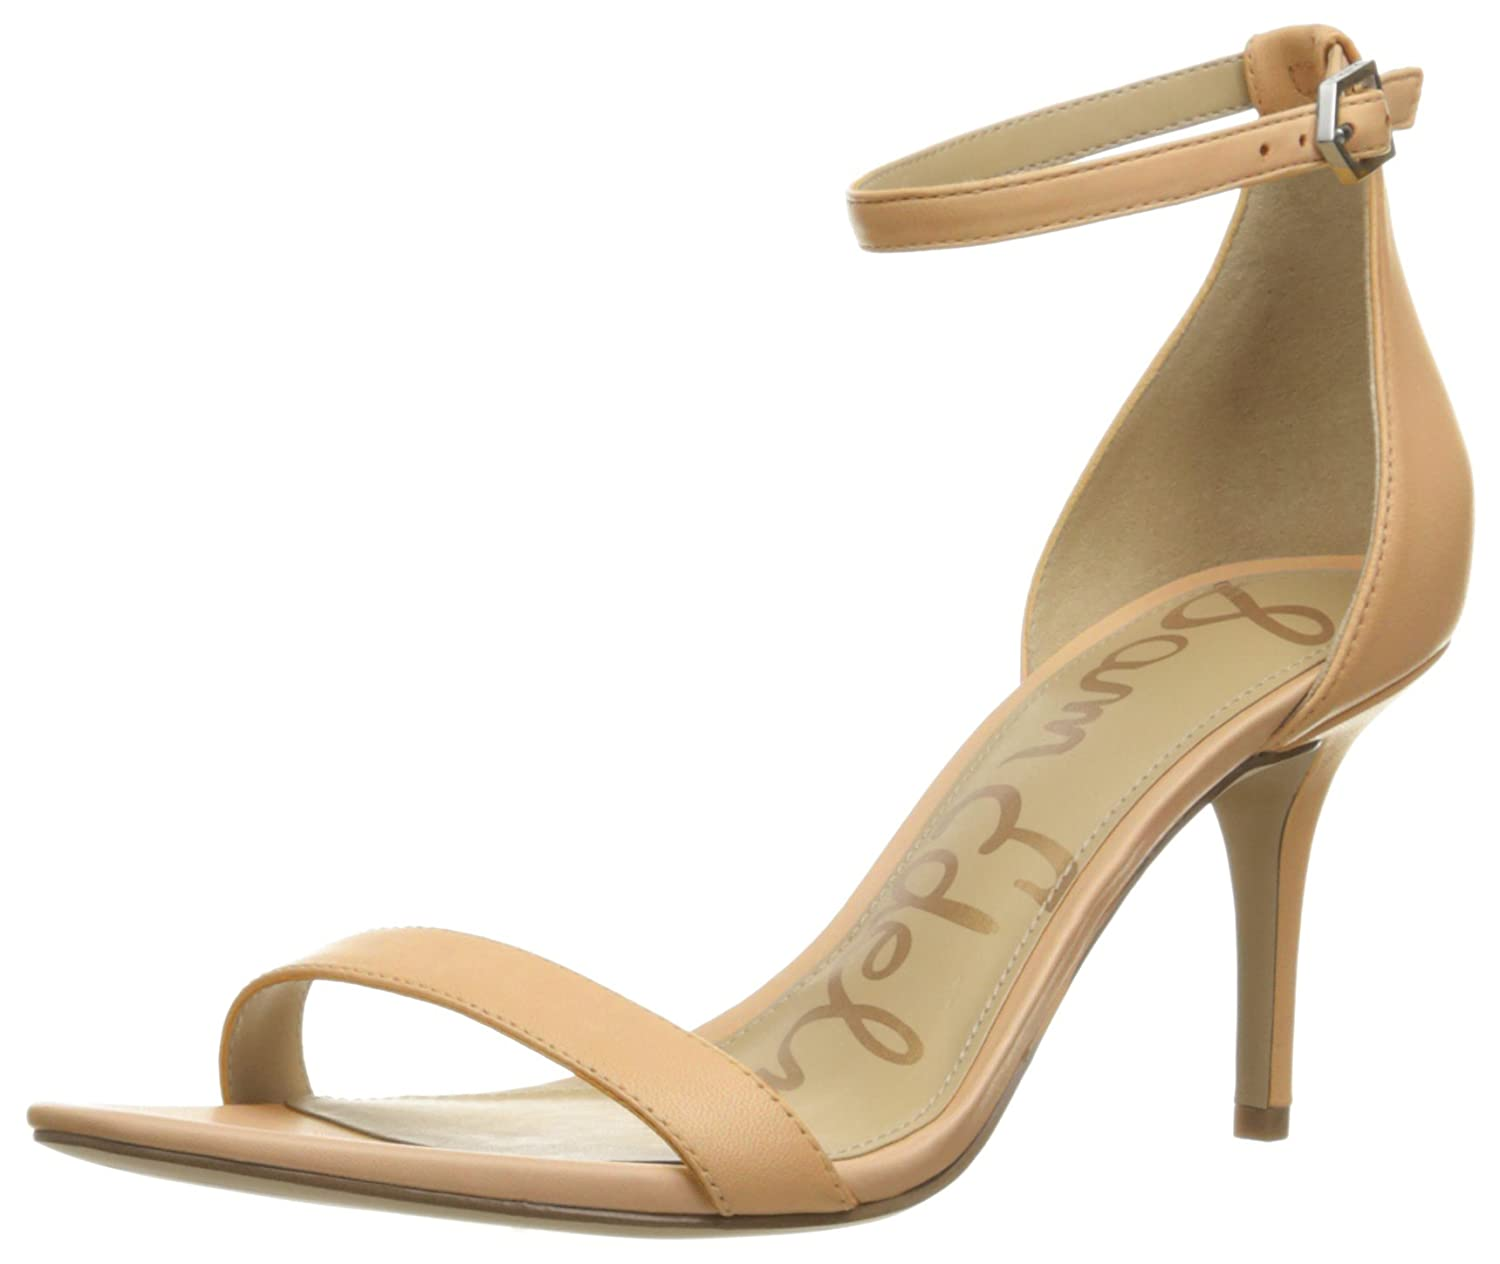 Sam Edelman Women's Patti Dress Sandal B01N2GX0KV 9 W US|Classic Nude Leather